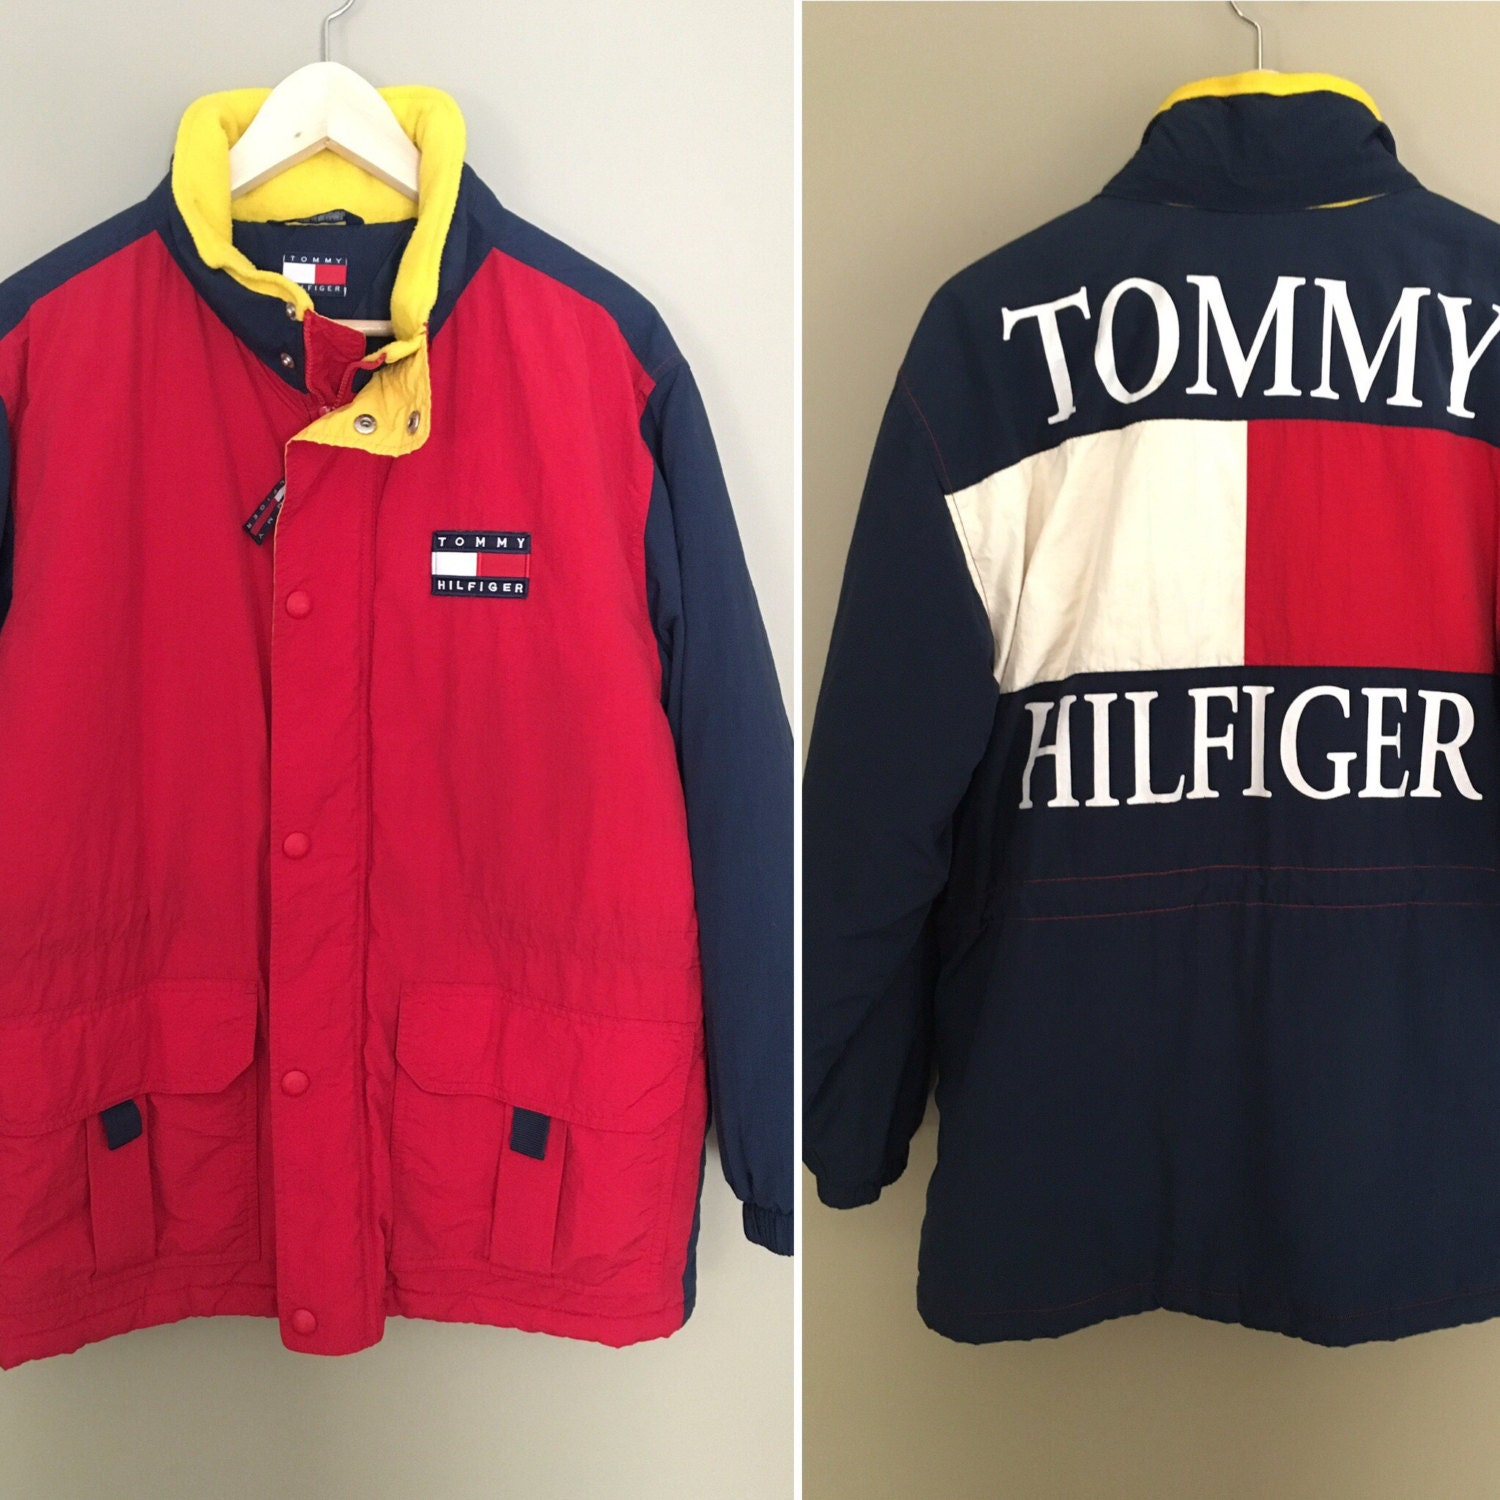 vintage 90s tommy hilfiger rare color block retro flag logo. Black Bedroom Furniture Sets. Home Design Ideas